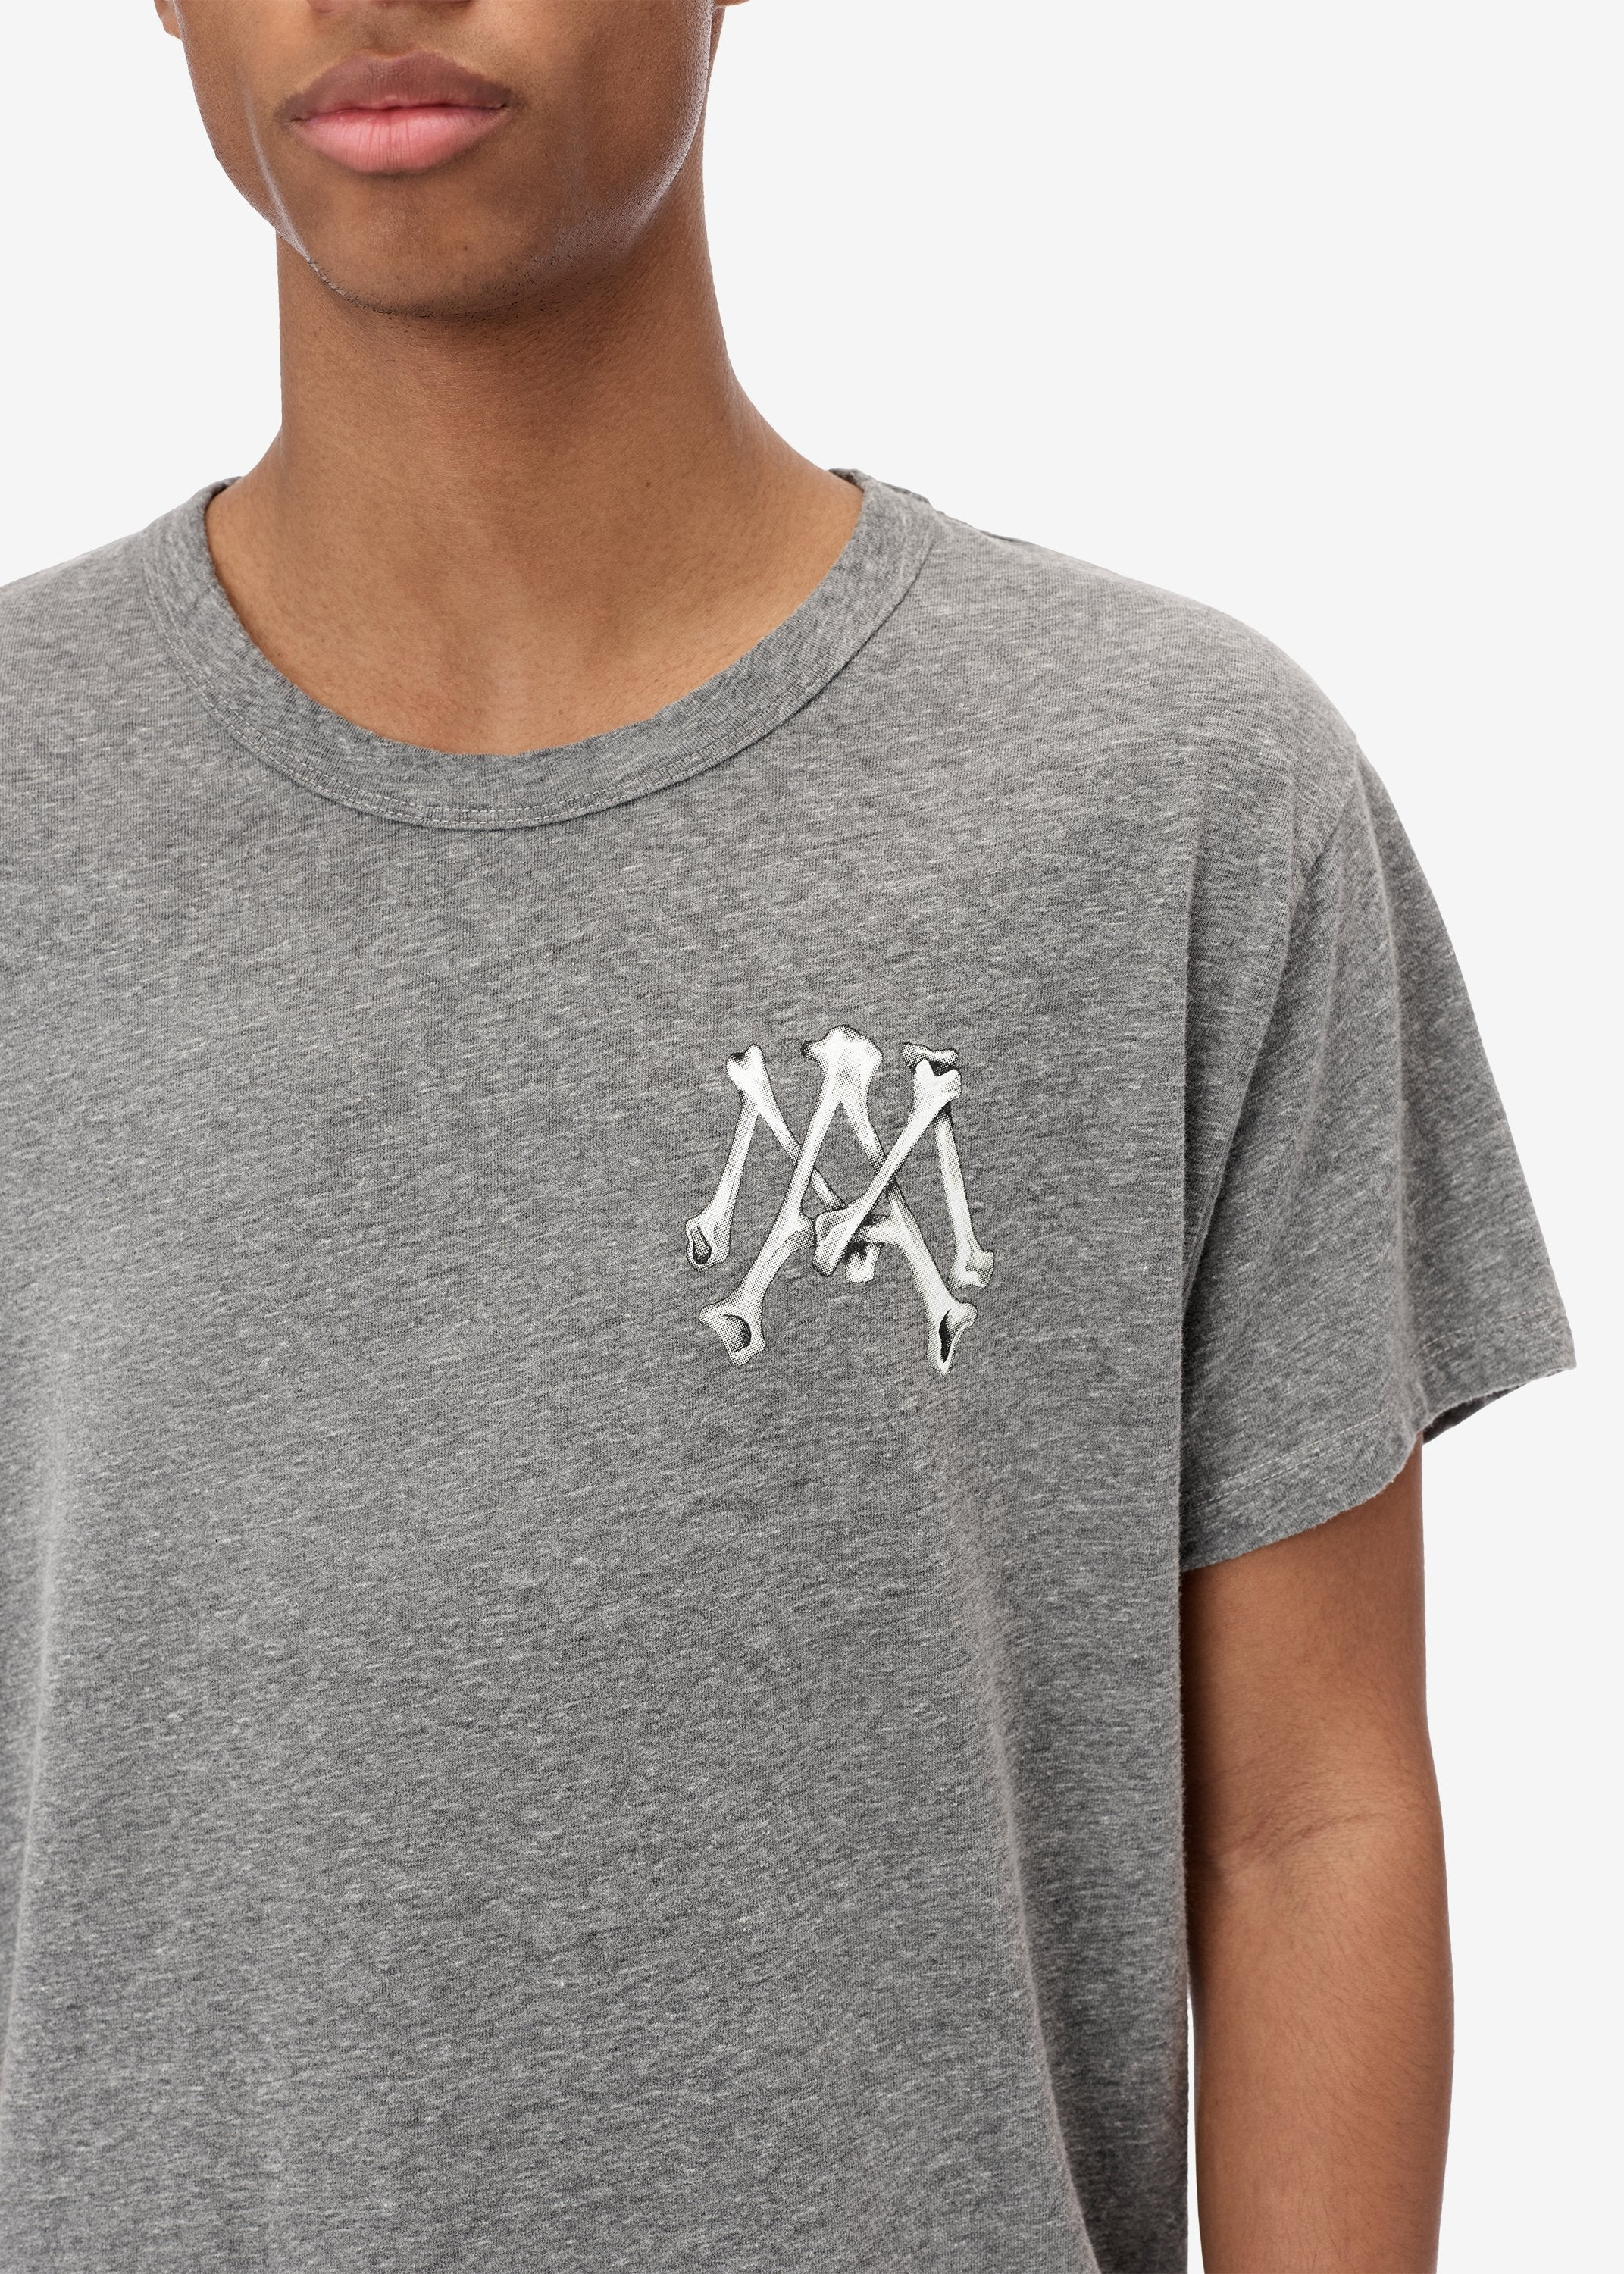 amiri-bones-m-a-tee-heather-grey-image-1